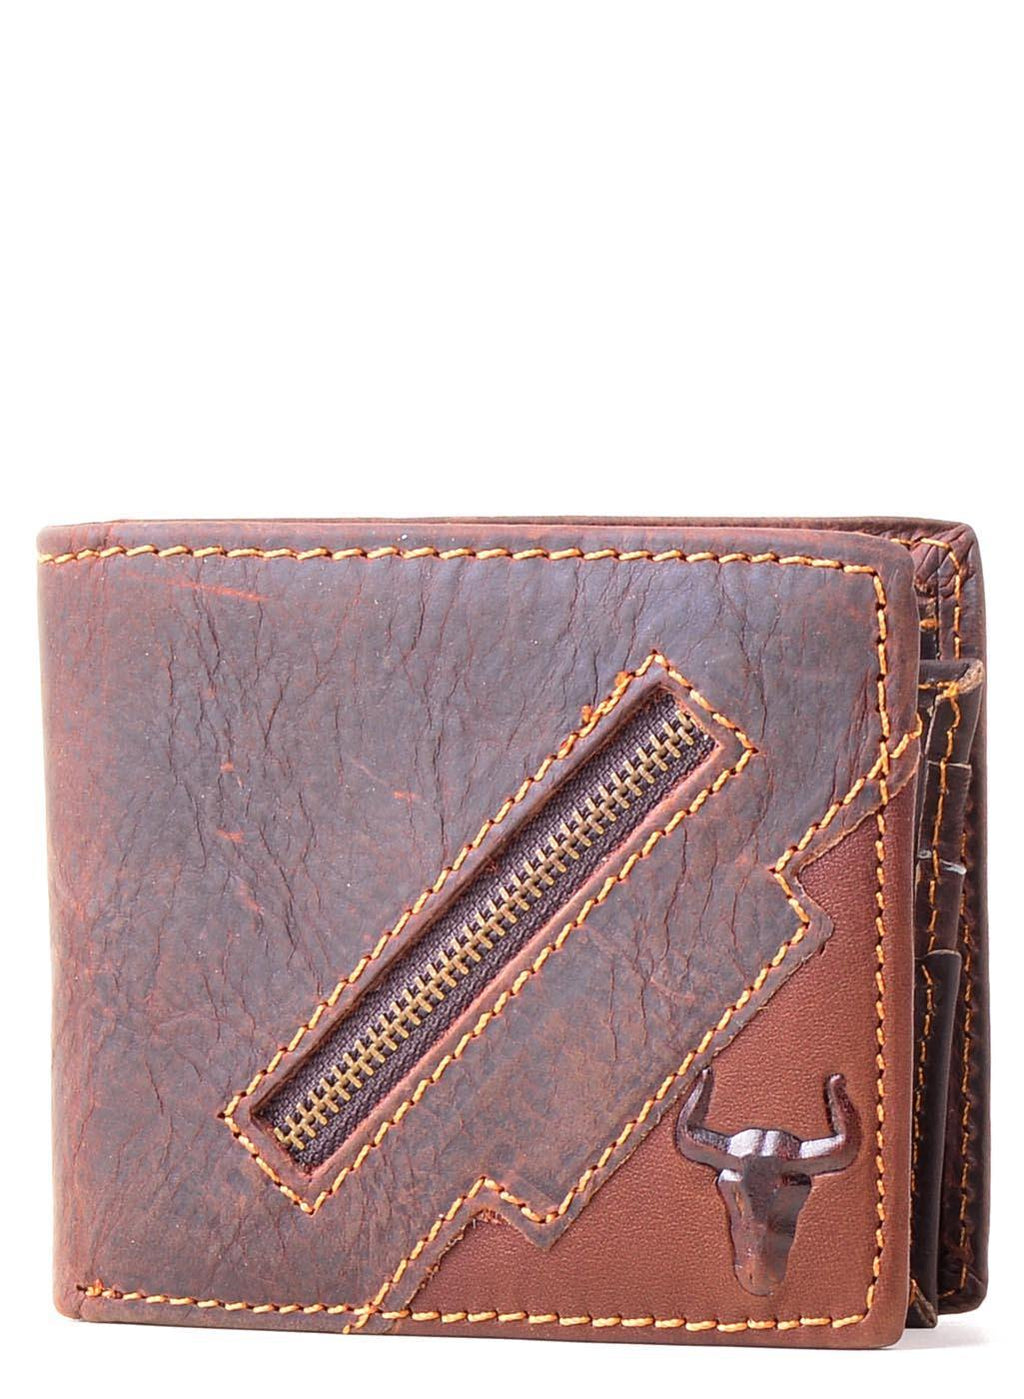 EthniCache Wallet Glorious Handmade Pure Leather Wallet